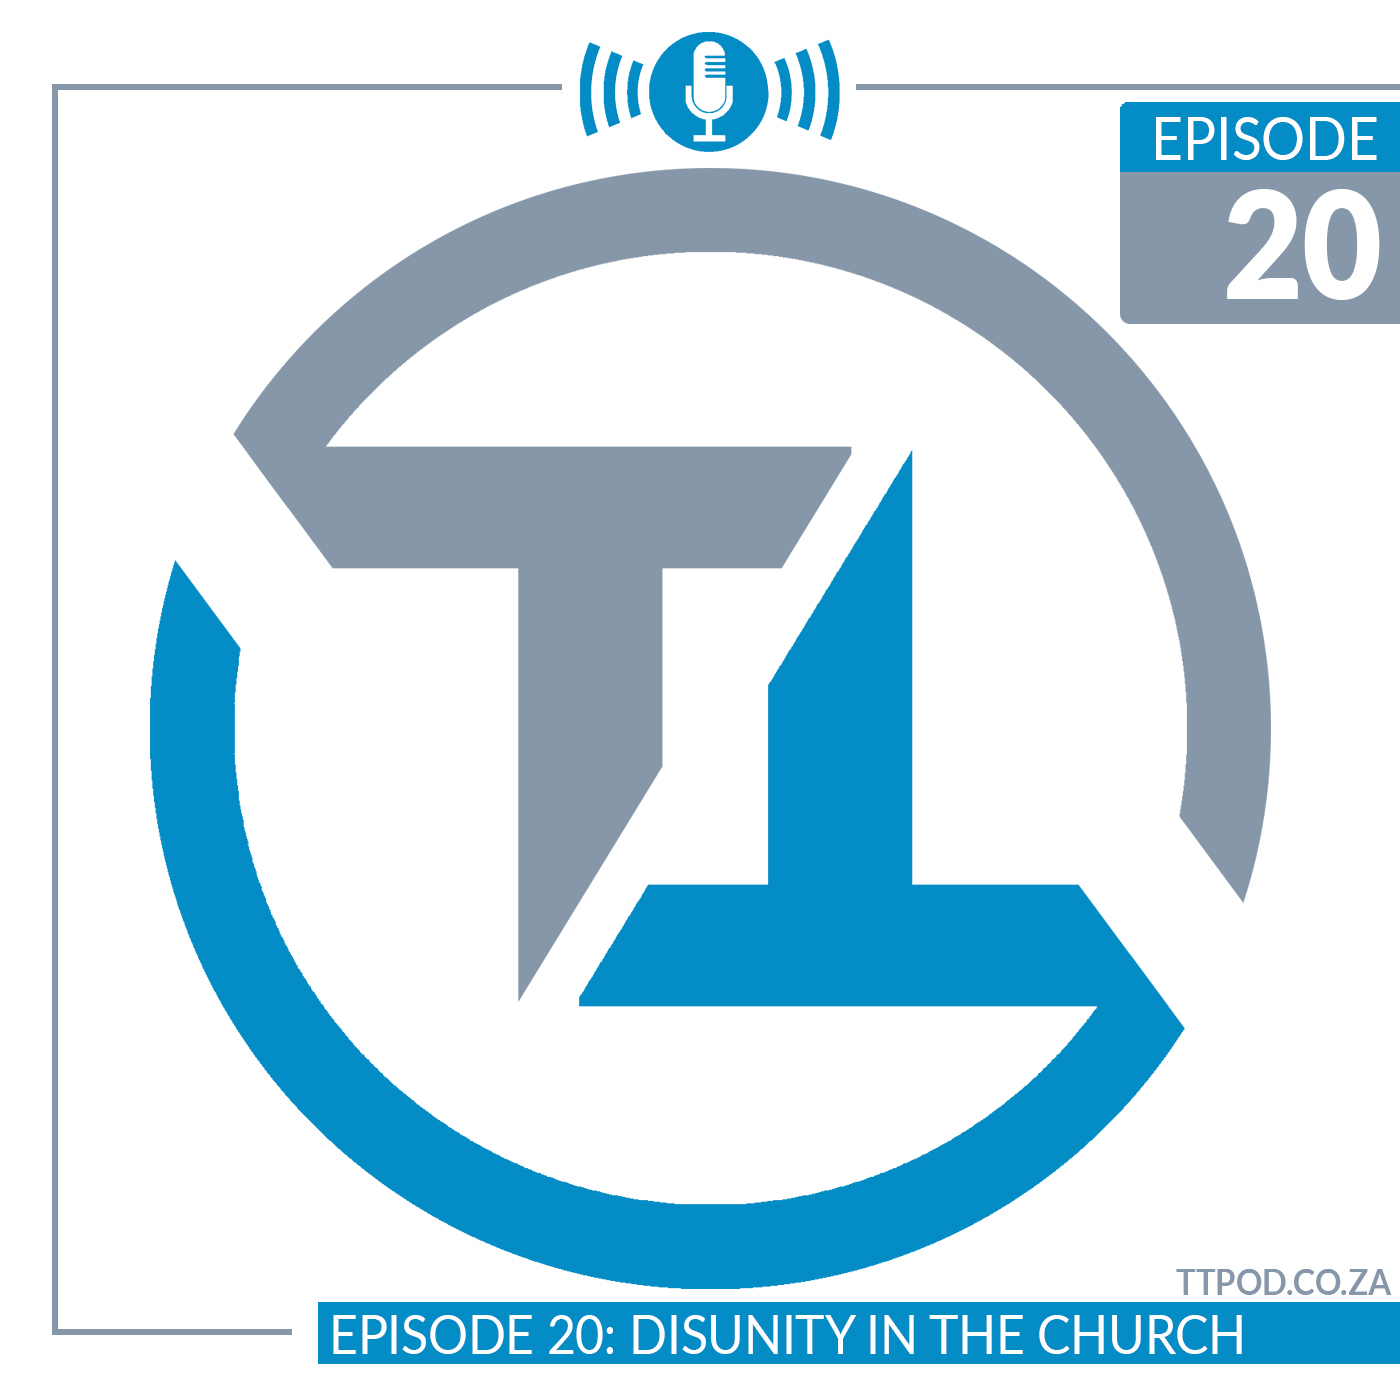 Episode 20: Disunity in the Church